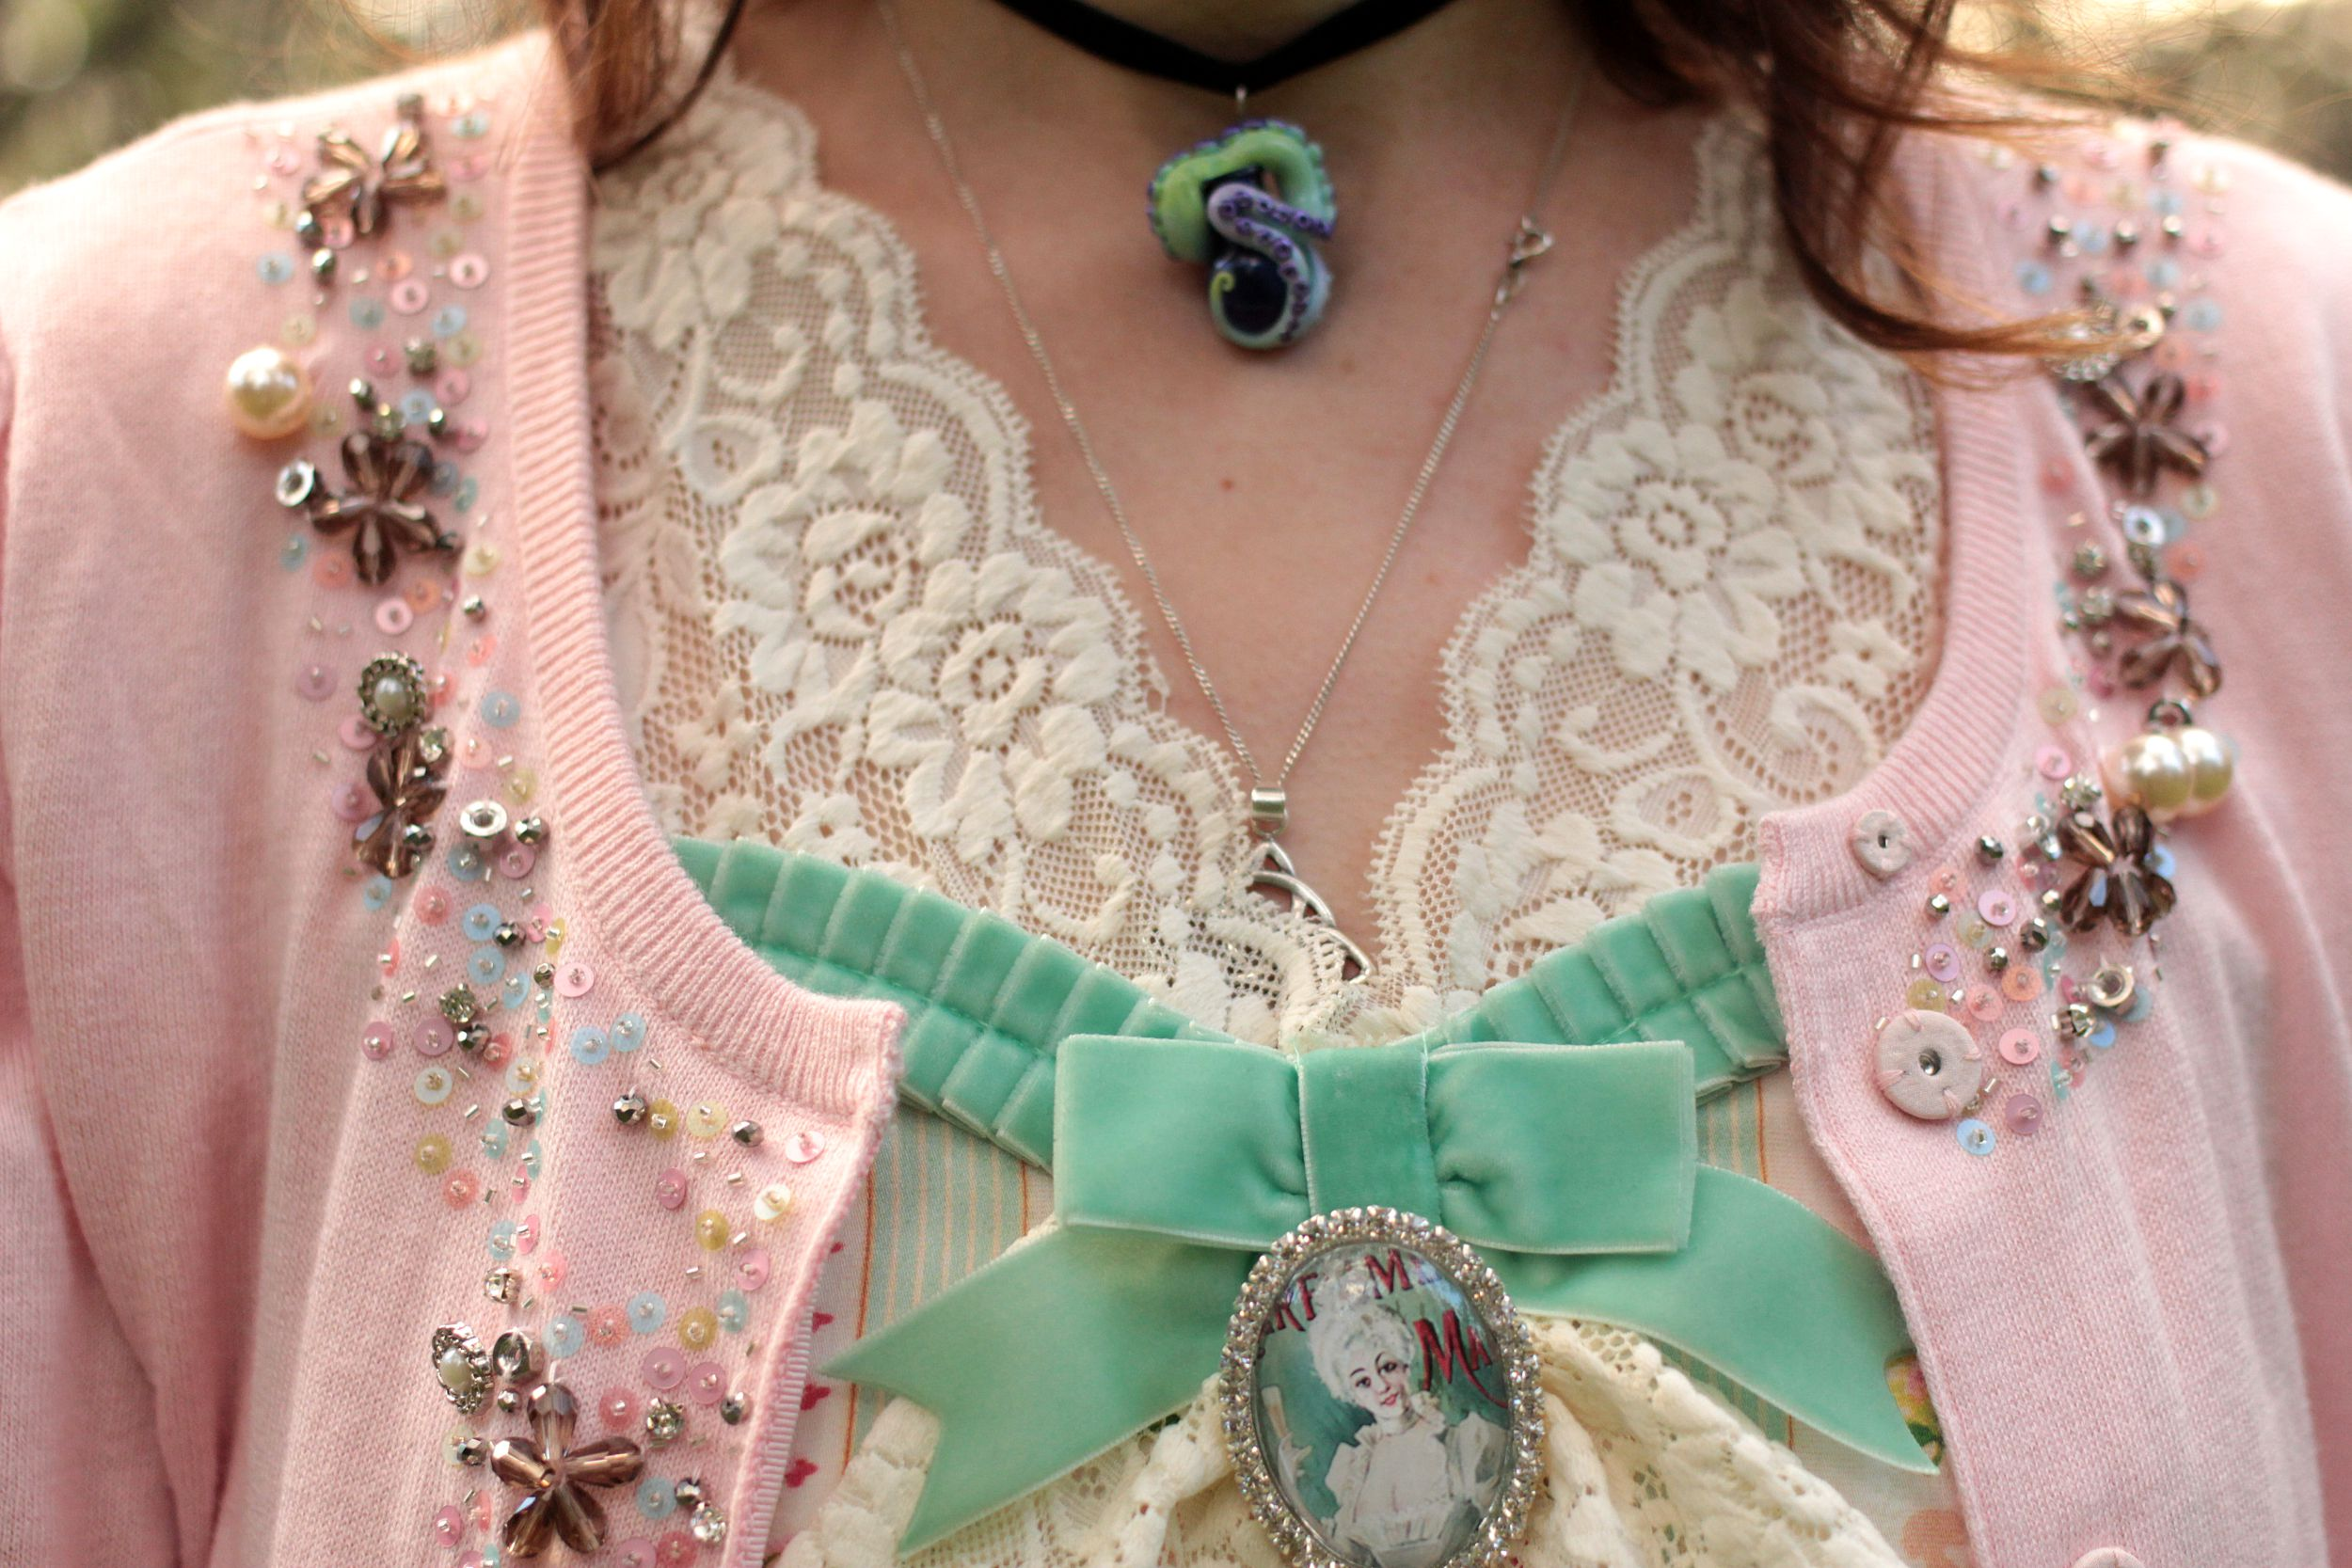 Details Kitten D'amour Cameo Lace Dress Louise Love My Secret Cage of guilded terror The Emerald Ruby